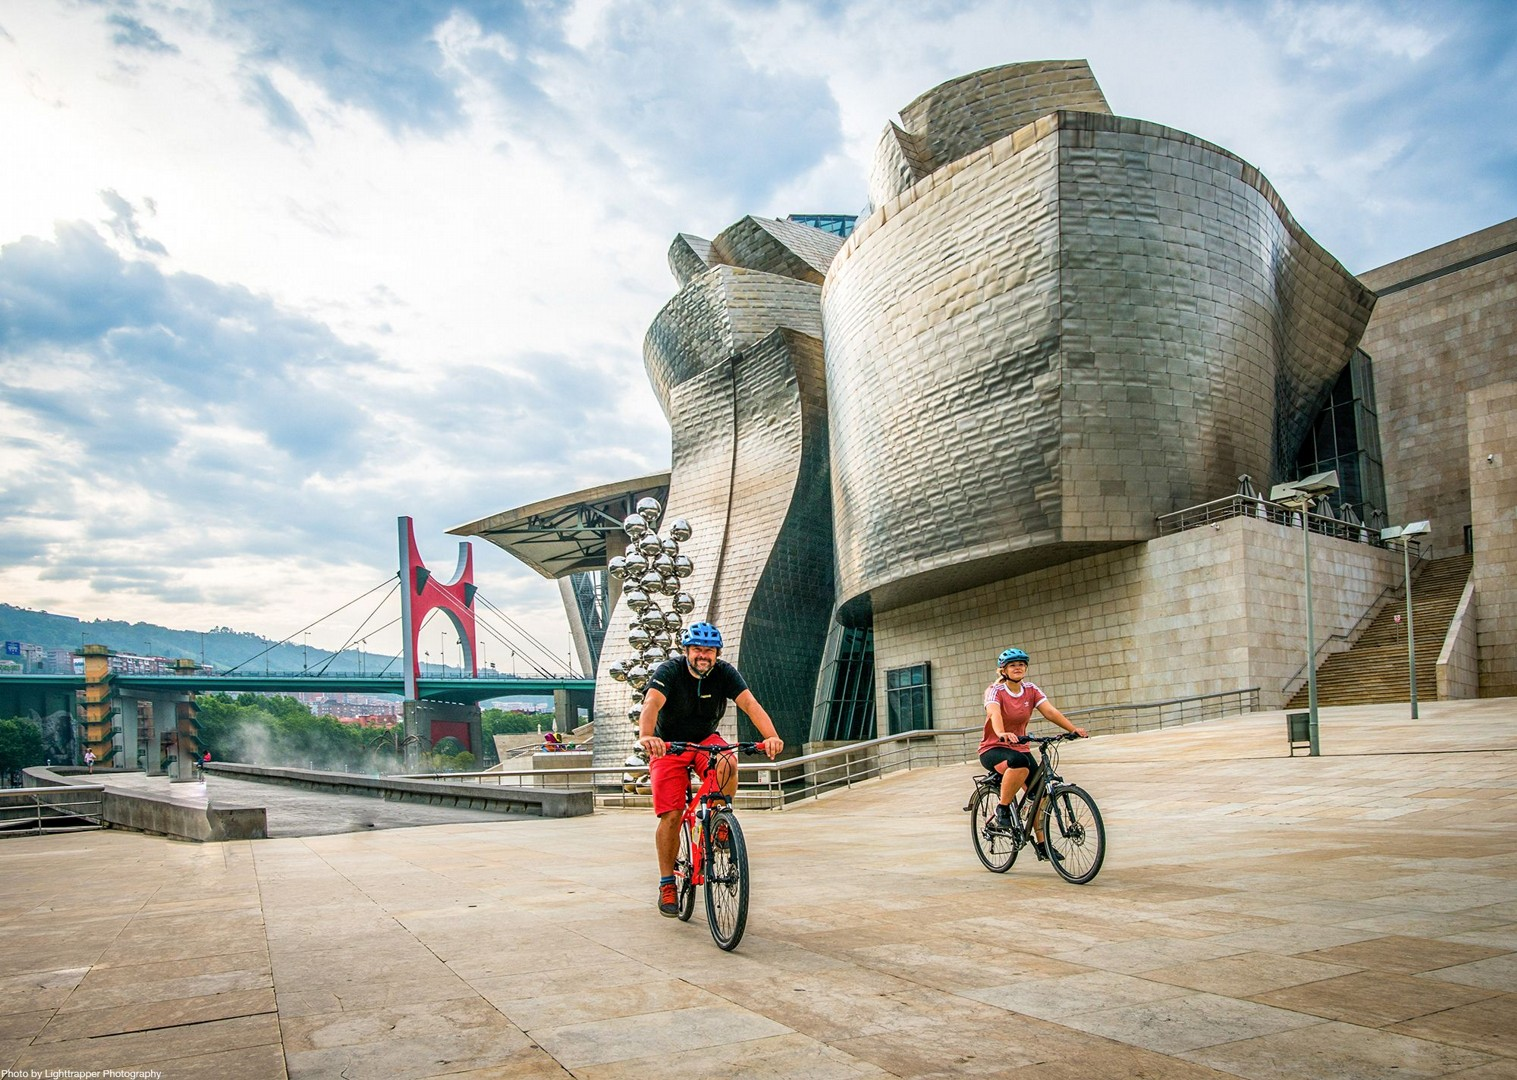 bilbao-guggenheim-cycling-holiday-in-spain-saddle-skedaddle.jpg - NEW! Spain - Bilbao to San Sebastian - Leisure Cycling